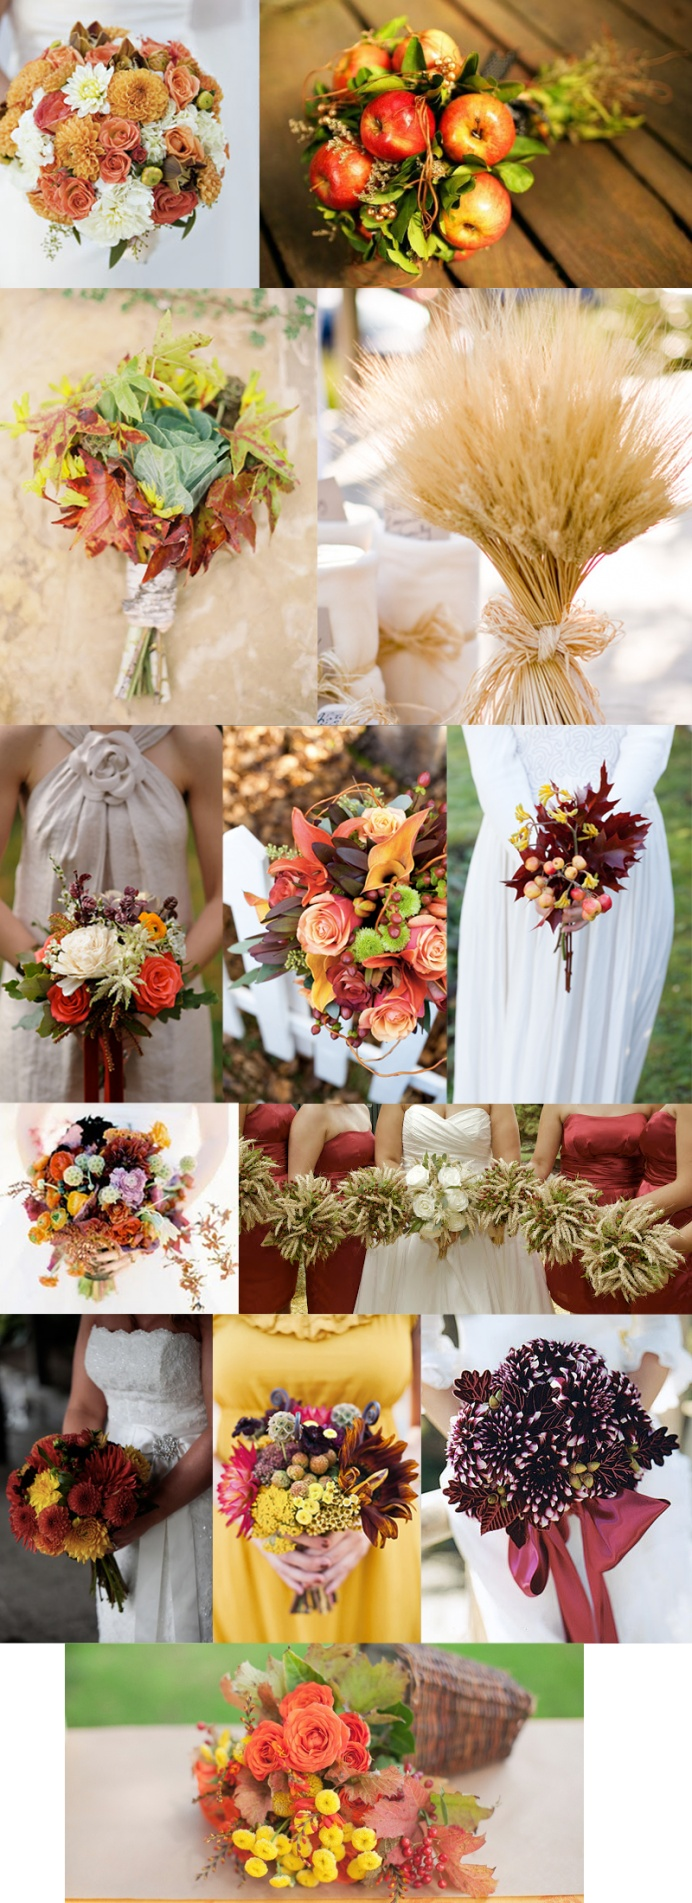 Flowers And Bouquets For Your Fall Wedding, Hay Straw, Wheat, Leaves